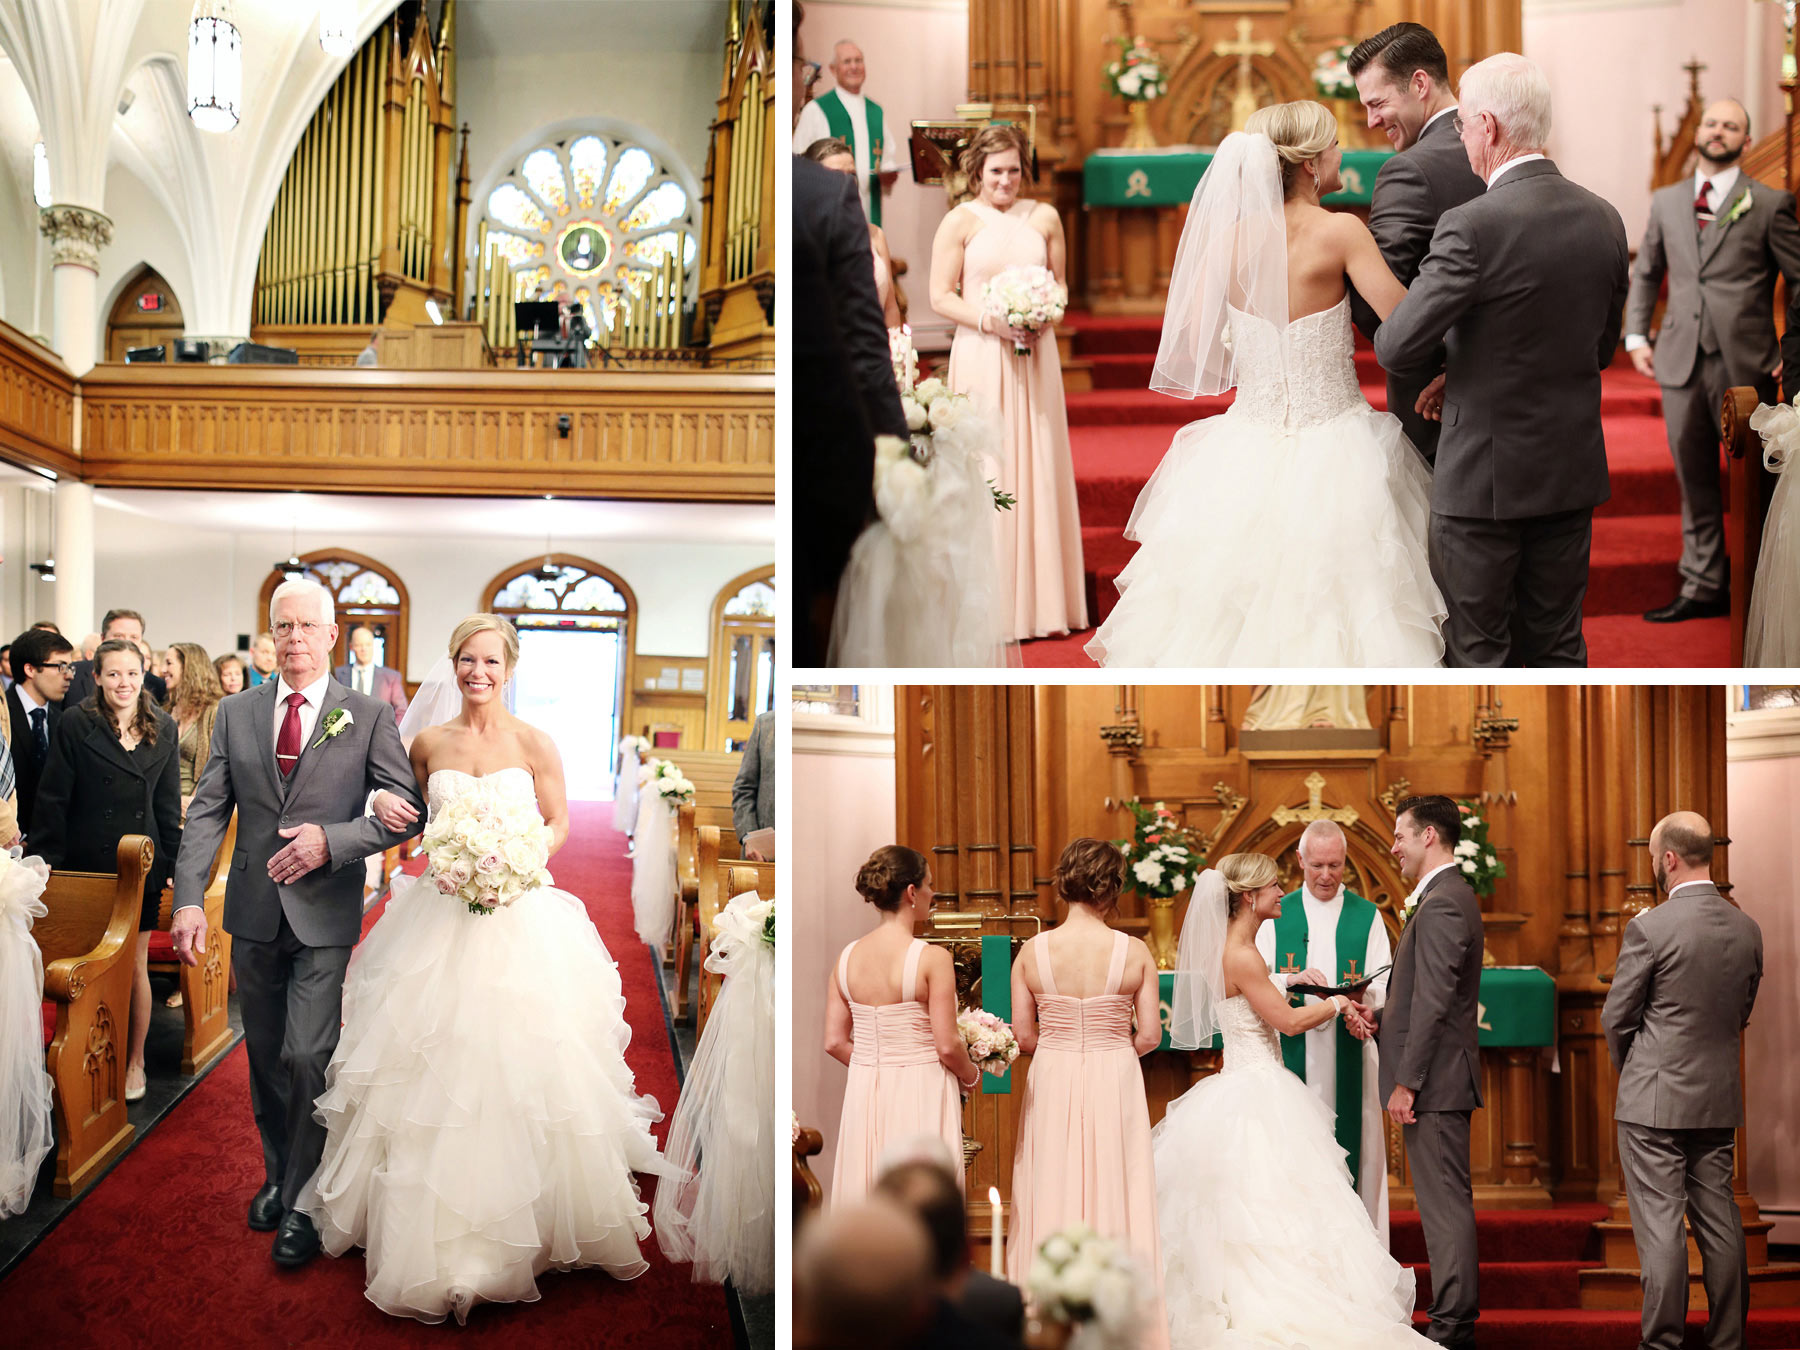 16-Milwaukee-Wisconsin-Wedding-Photographer-by-Andrew-Vick-Photography-Fall-Autumn-Destination-Grave-Evangelical-Lutheran-Church-Bride-Groom-Father-Parents-Processional-Vows-Tina-and-Kevin.jpg